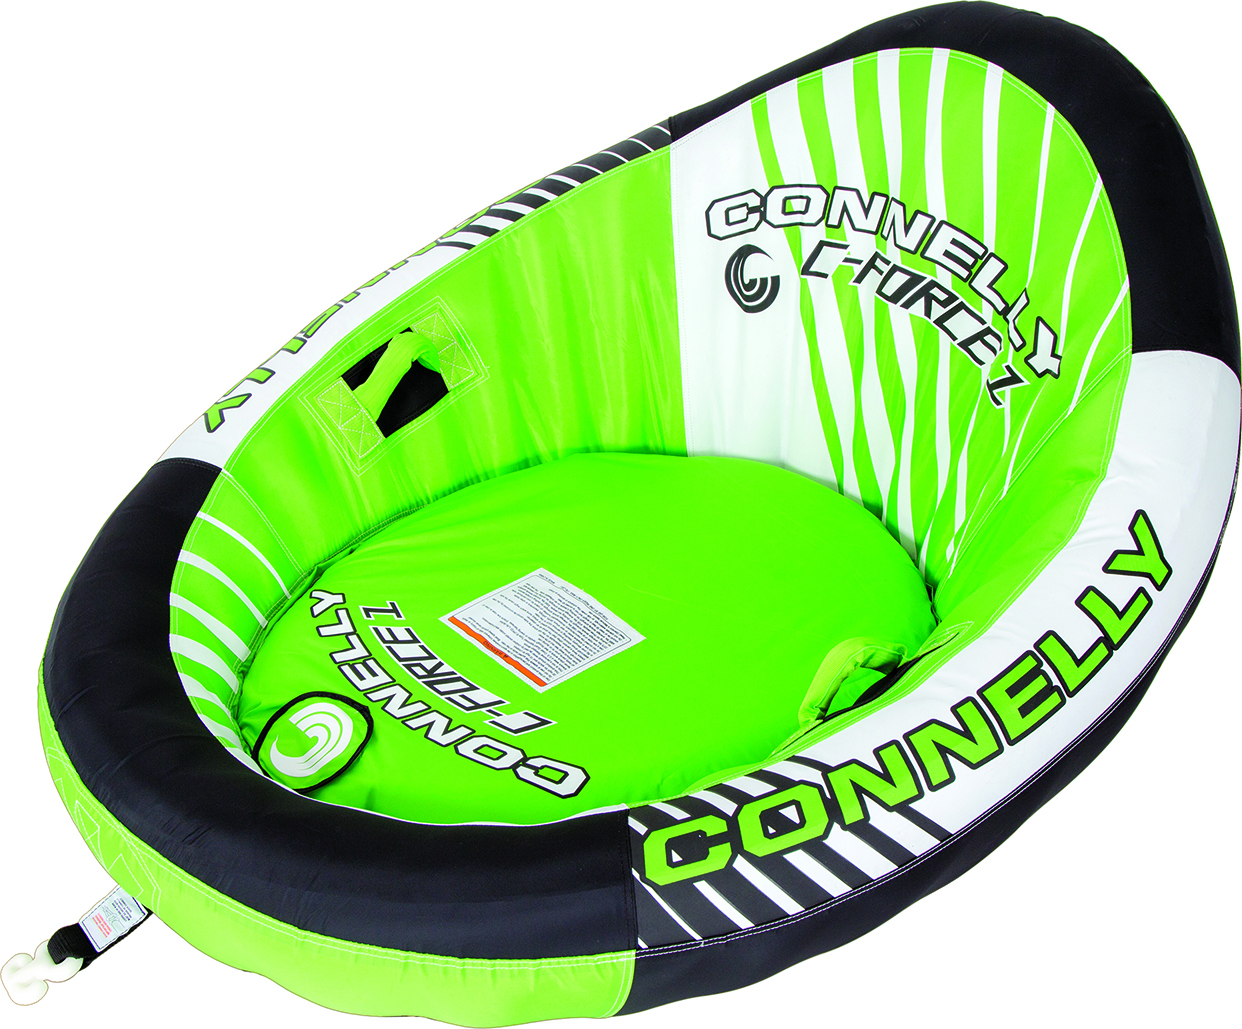 C-FORCE 1 TOWABLE TUBE CONNELLY 2017